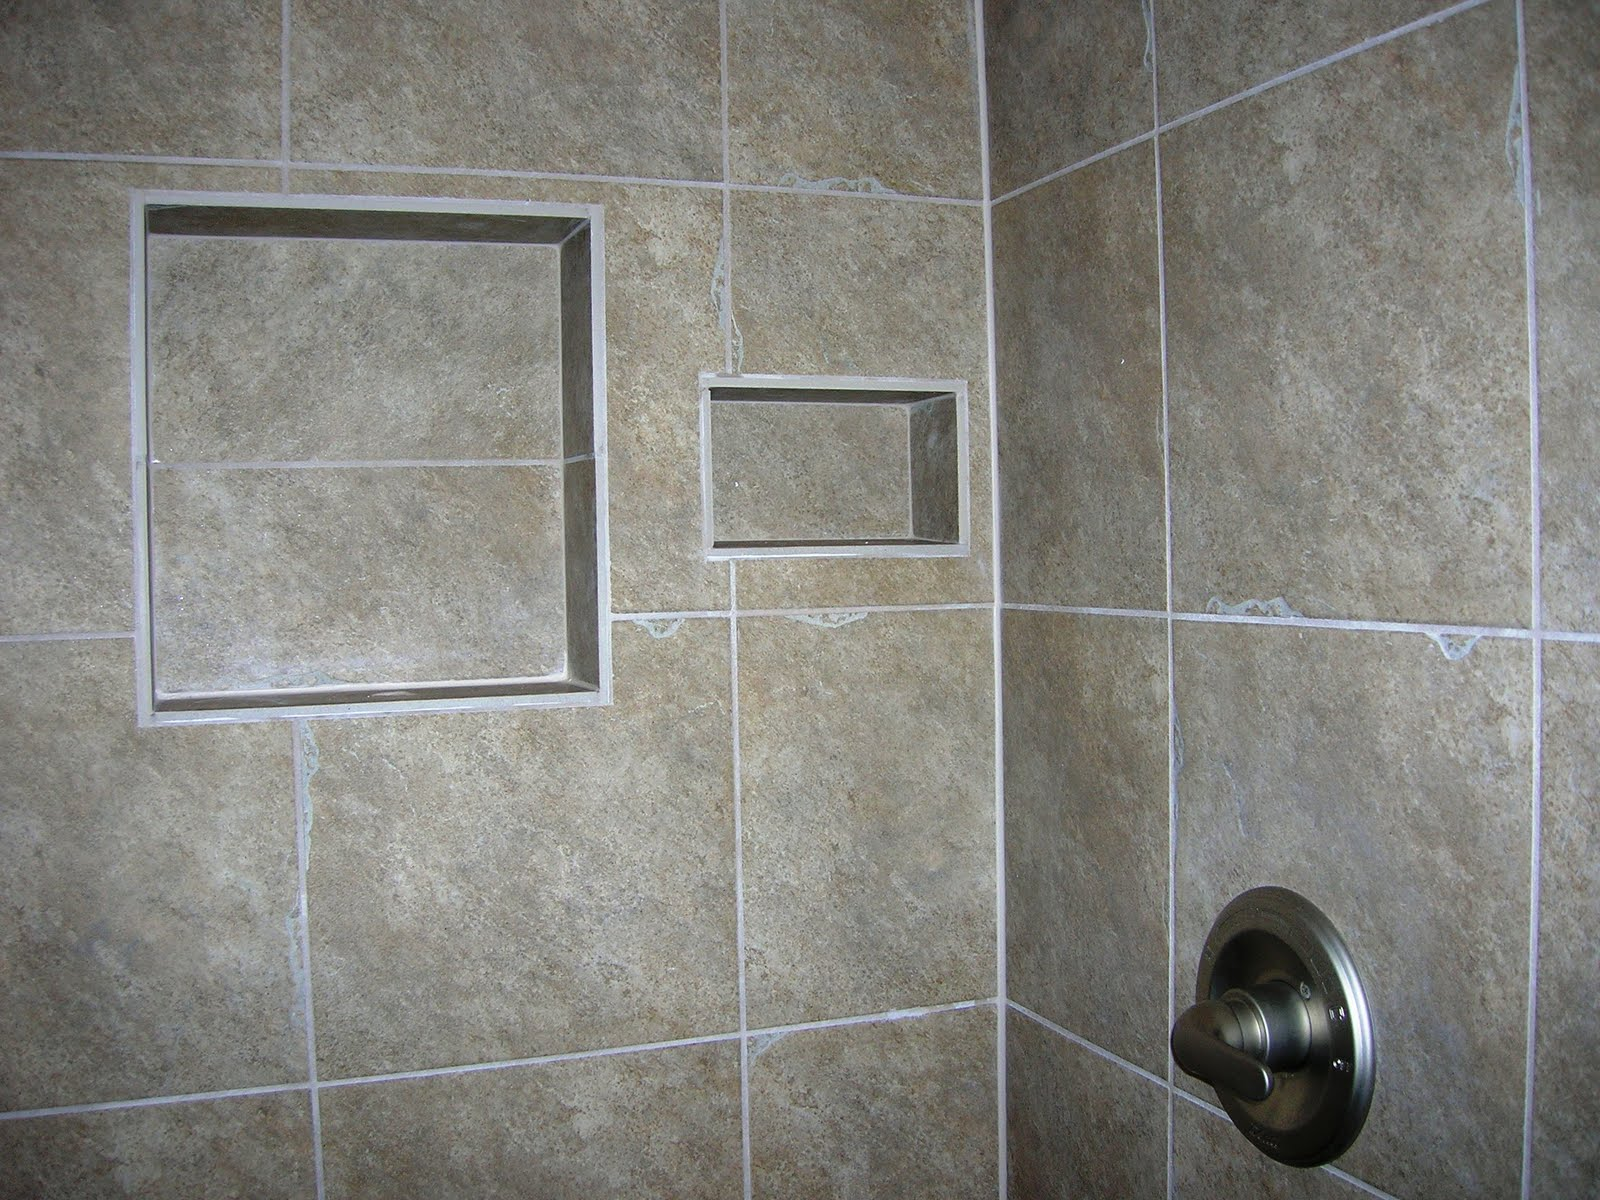 Modern bathroom tile design - Bathroom Bathroom Tile Shower Ideas Pictures Tile Shower